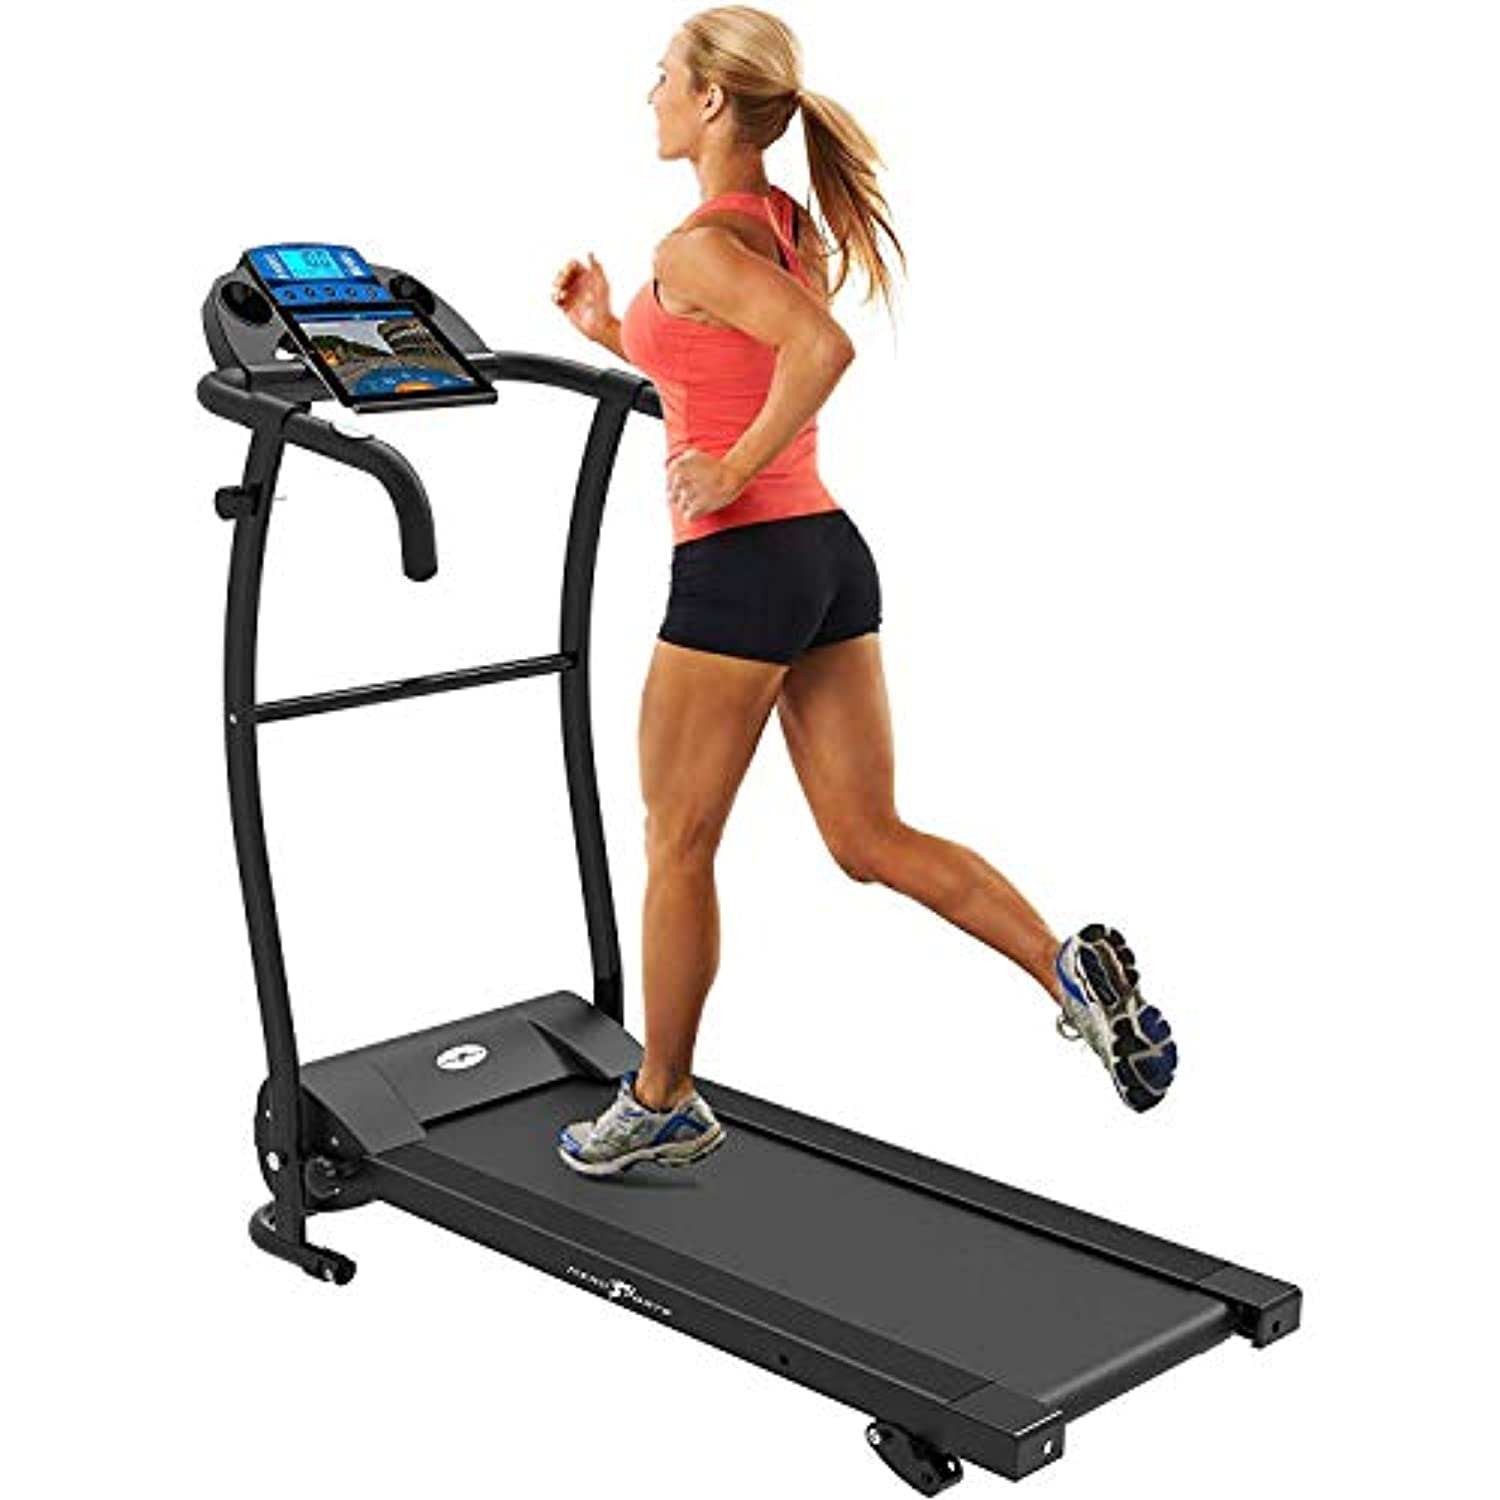 The A6 Folding Treadmill - smrt-life.com